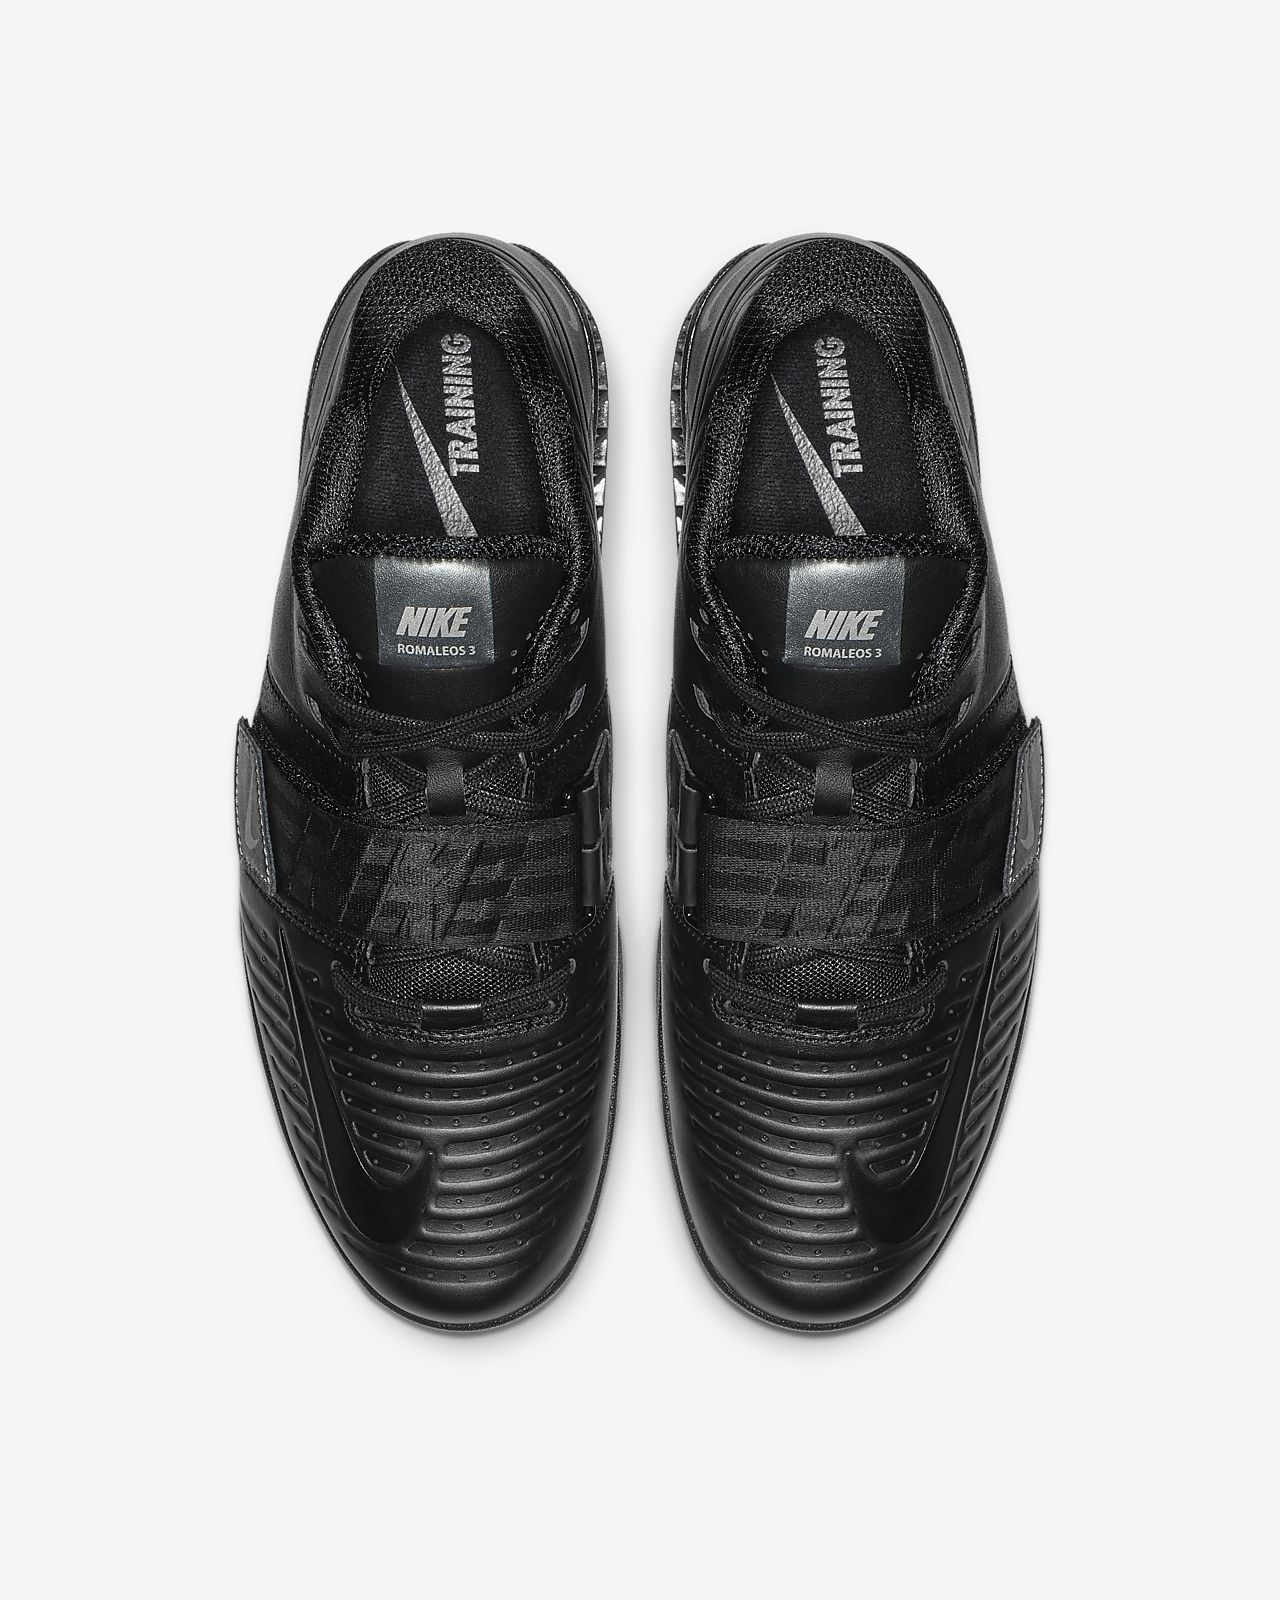 new products 0a3c0 3495d ... Nike Romaleos 3 XD Training Shoe